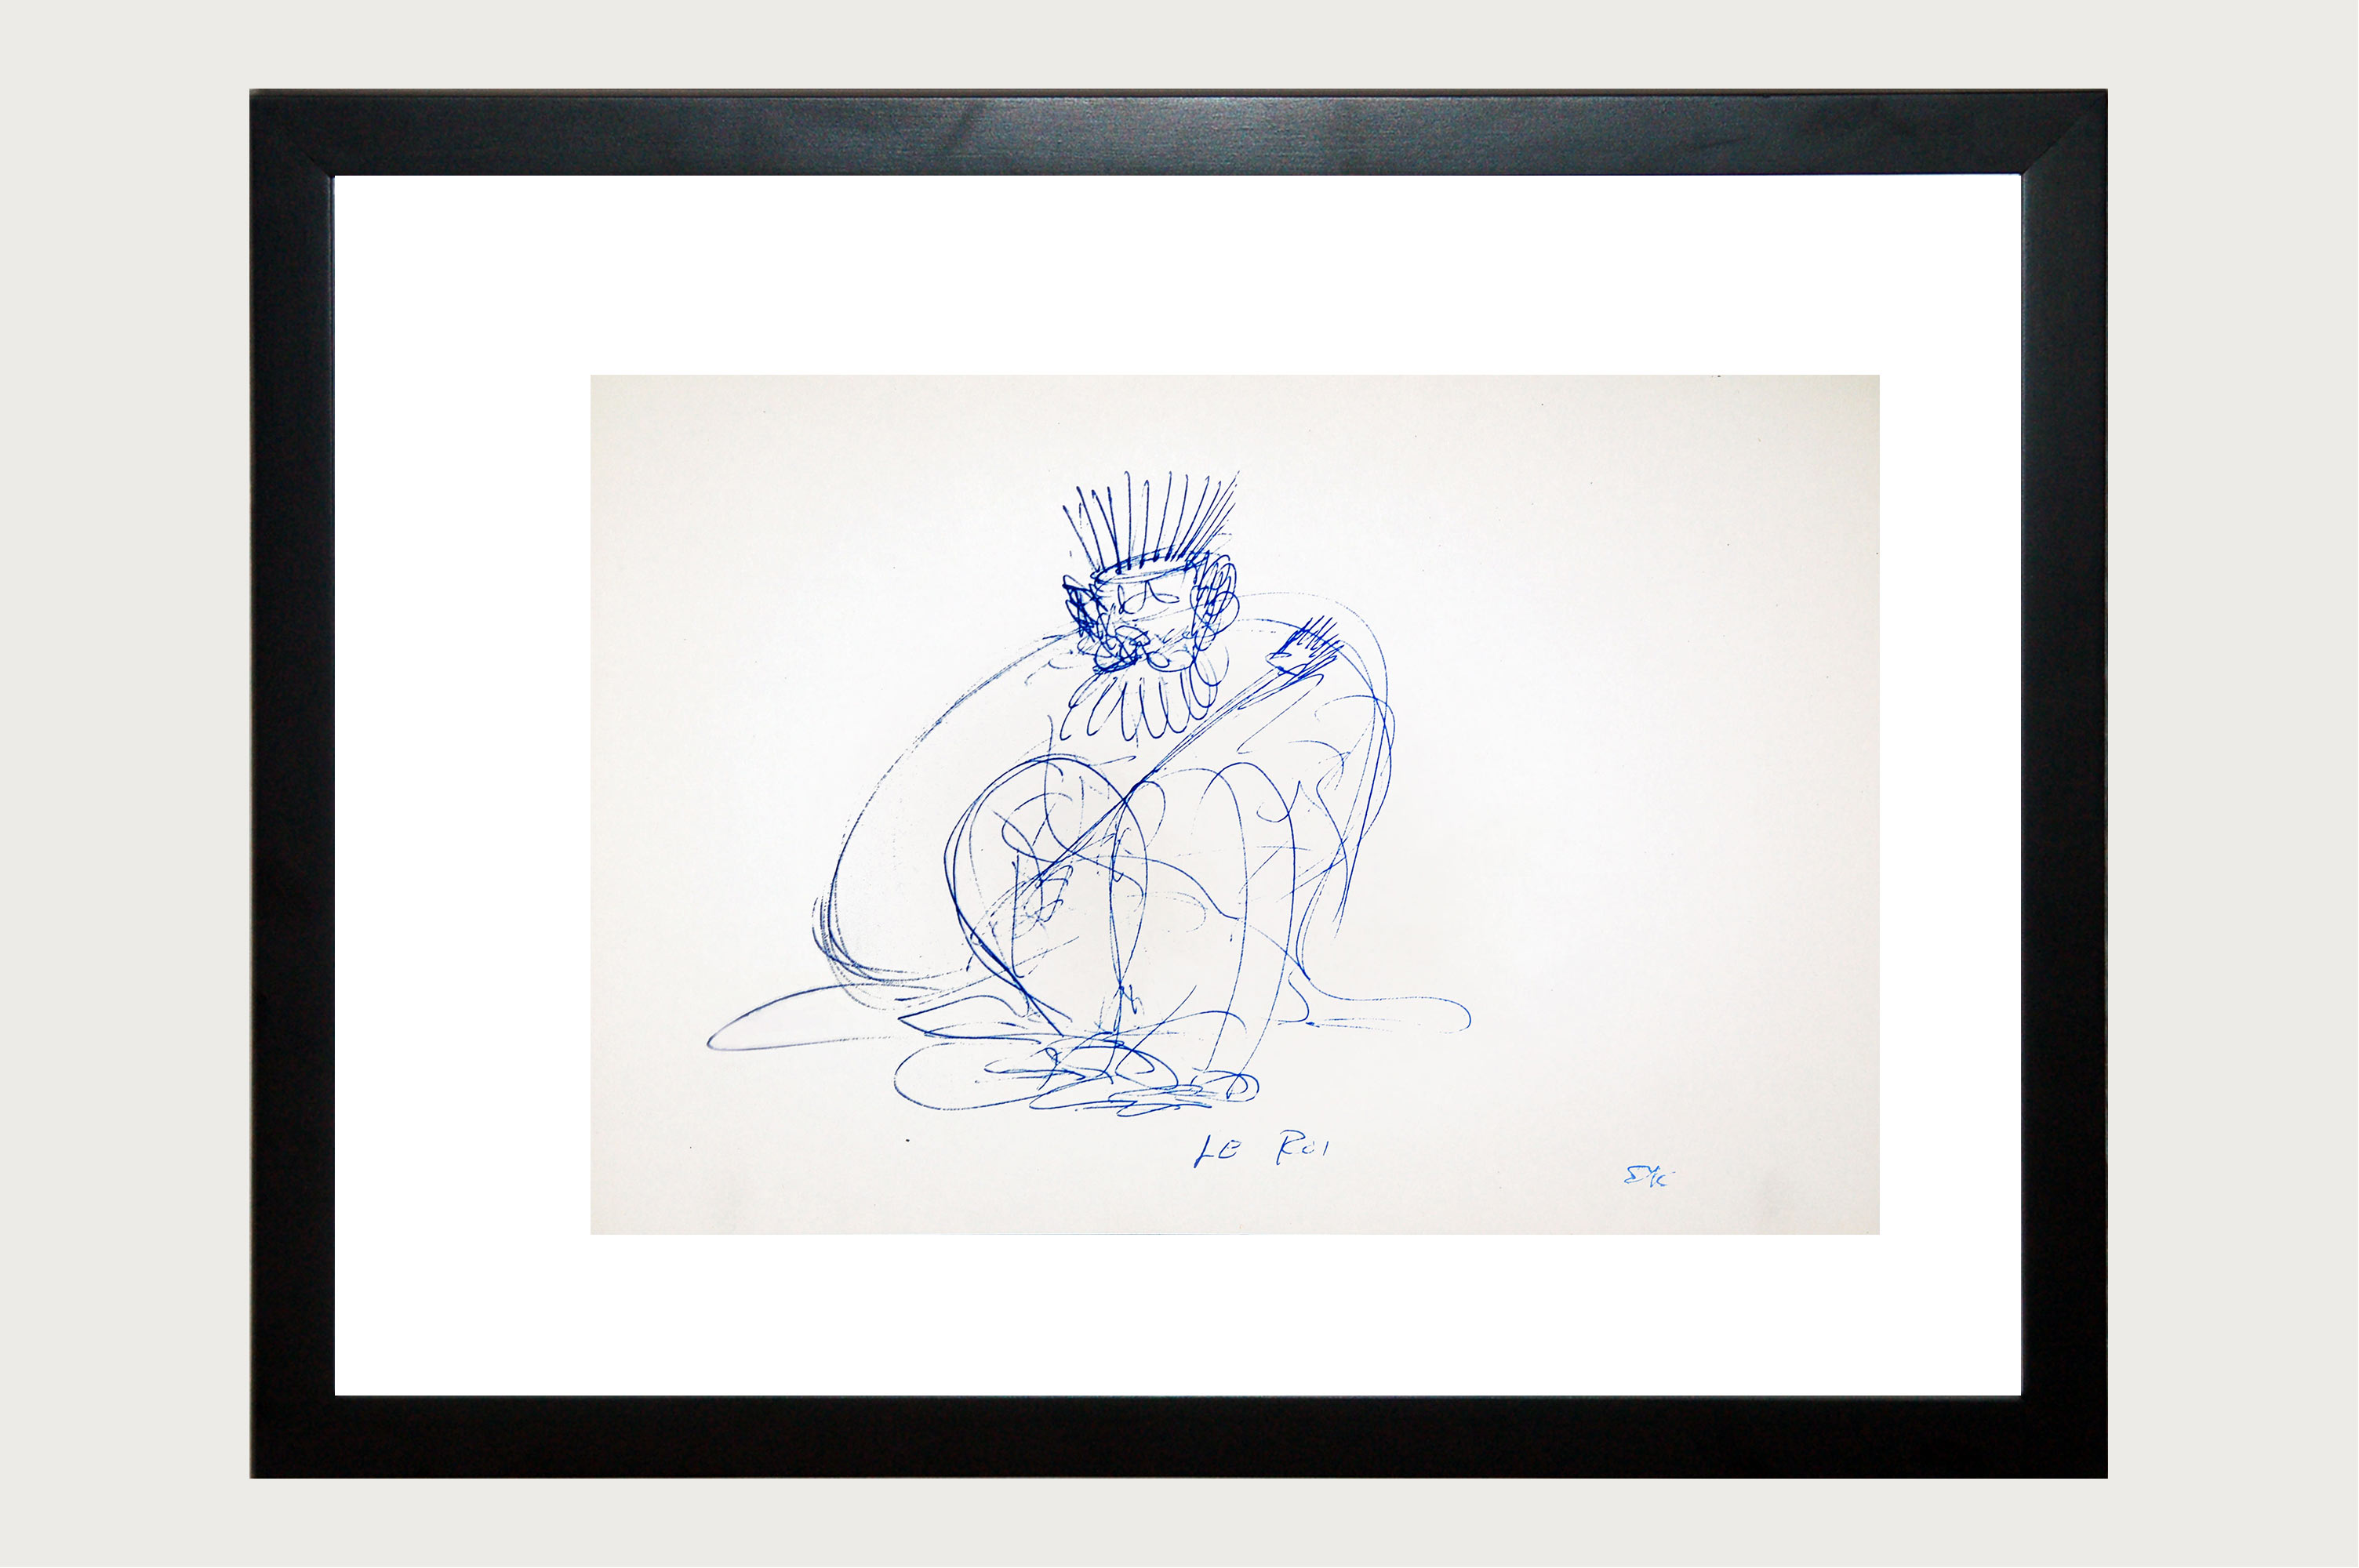 Ernie Kovacs Limited Edition Set Of Ten Lithographs [Framed]